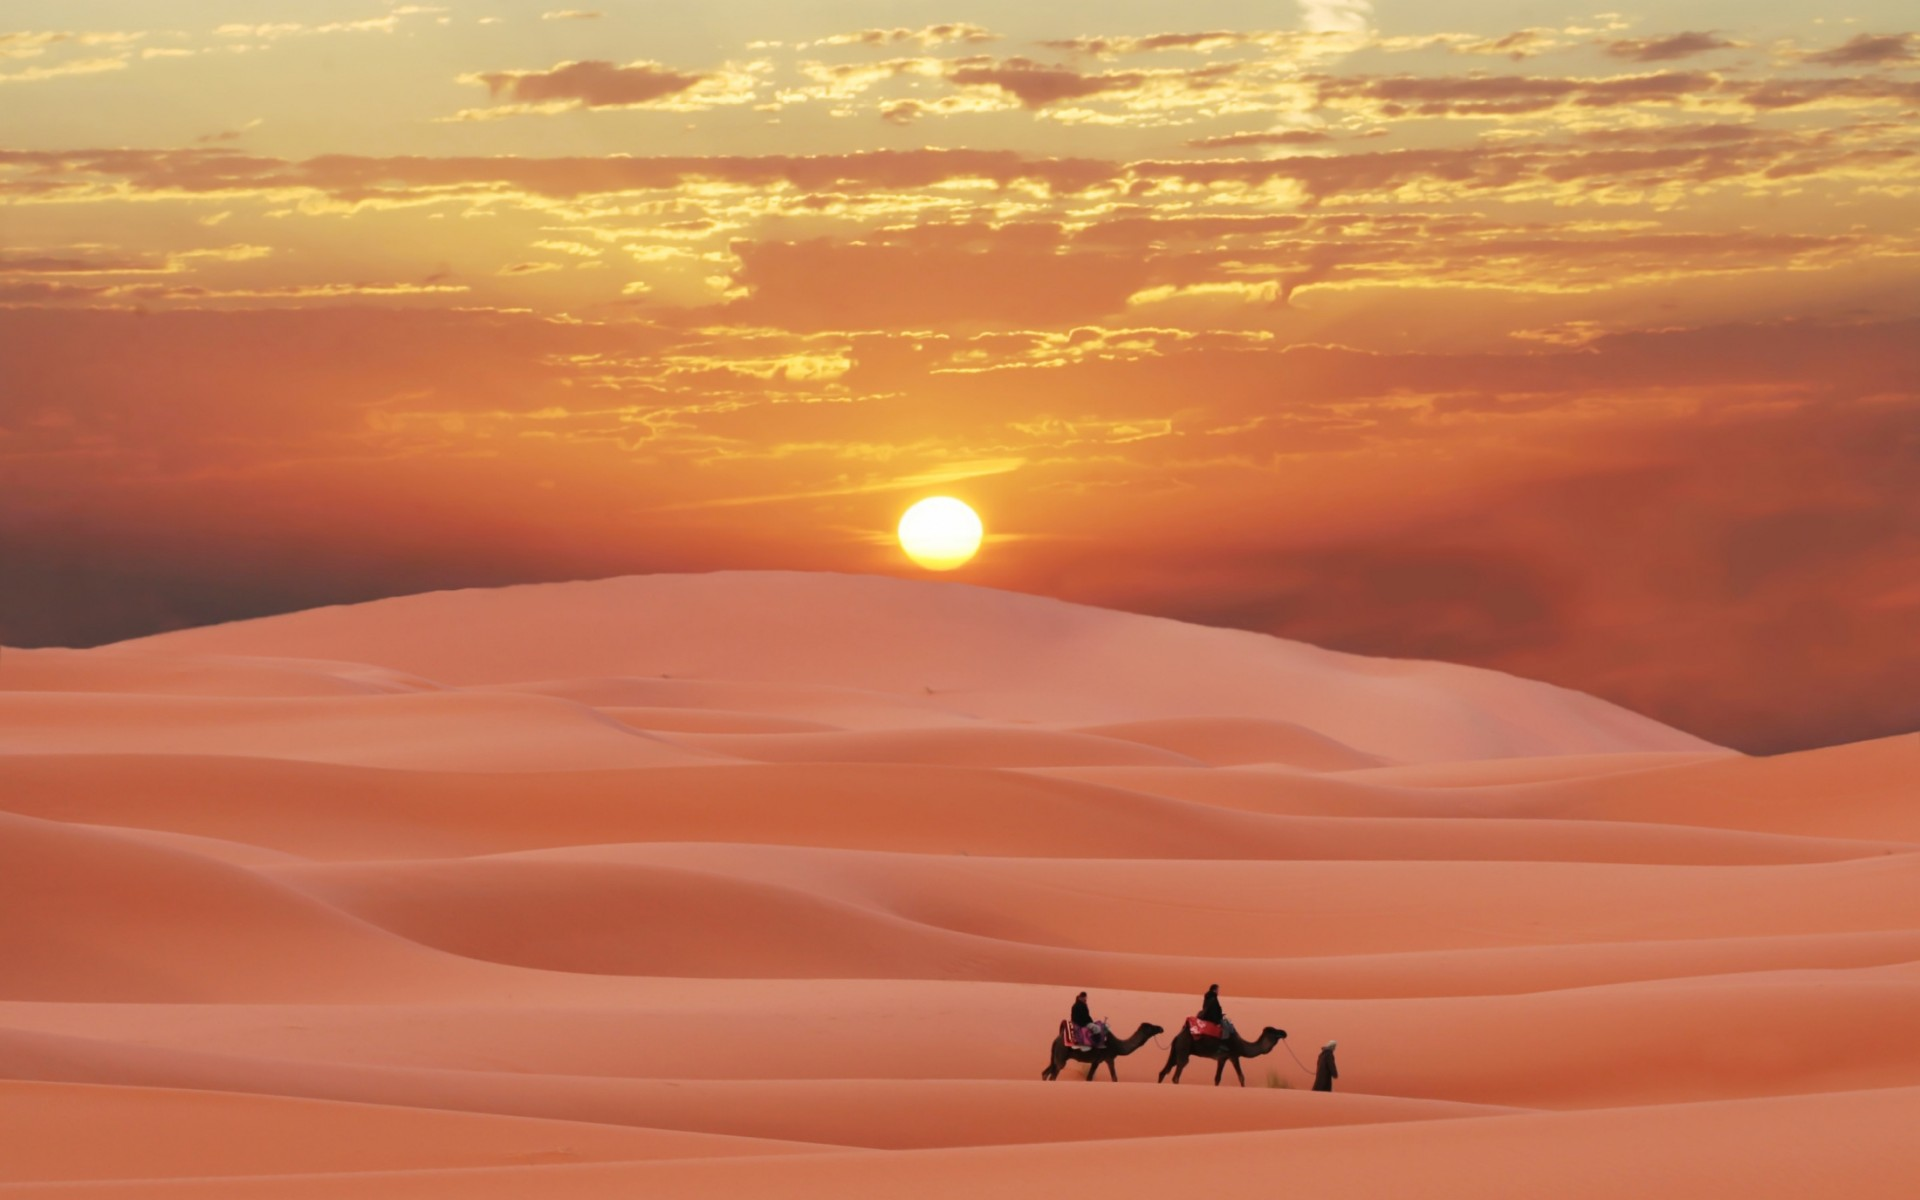 Free Download Sahara Desert Morocco Berber Sunset Camel Sand